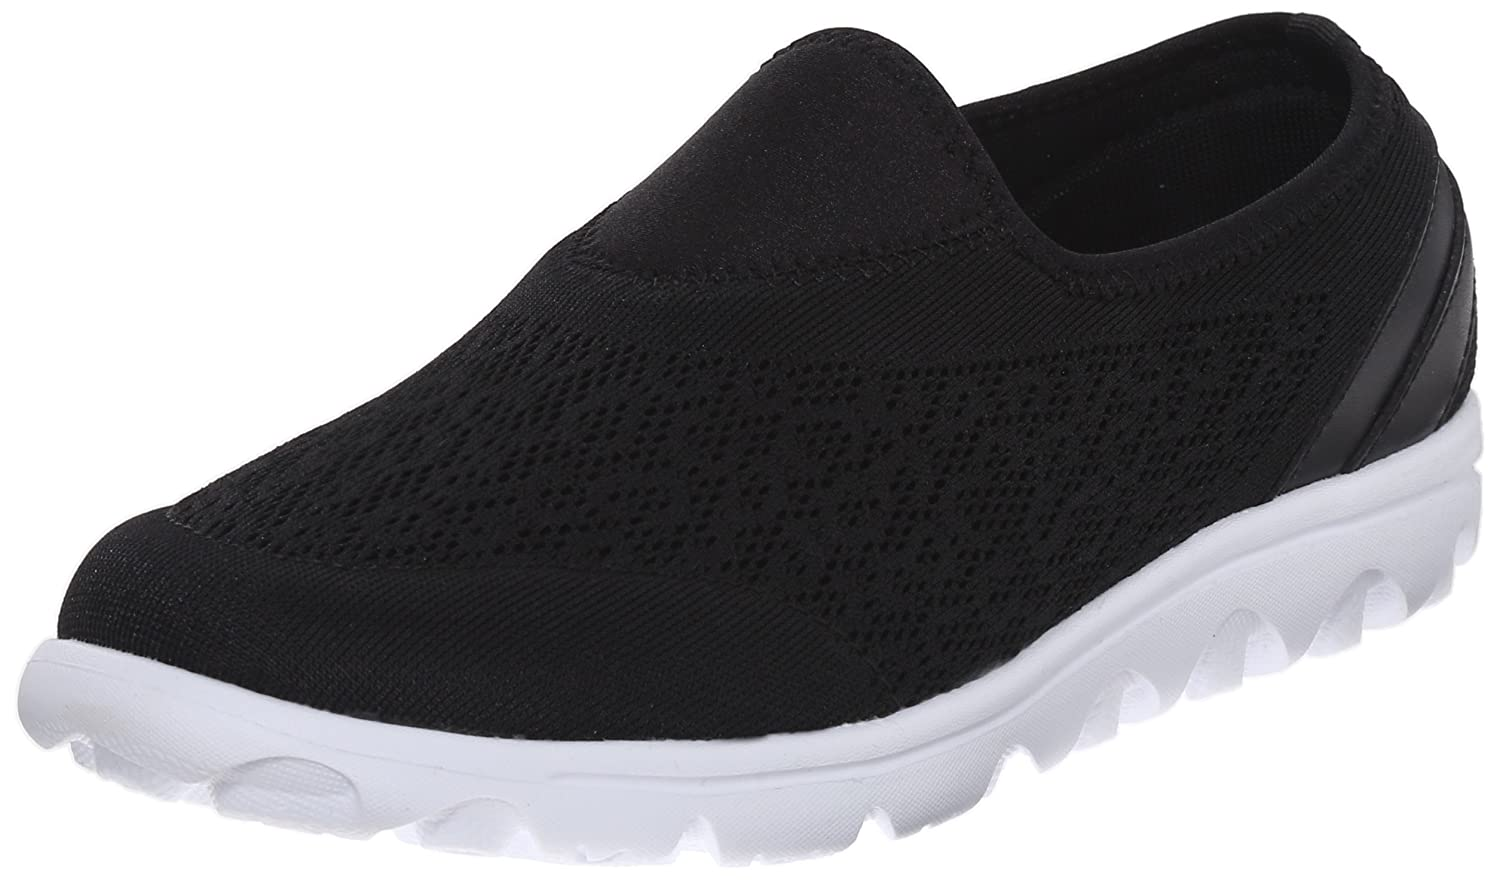 Propet Women's TravelActiv Slip-On Fashion Sneaker B0118GBHNS 9.5 B(M) US|Black